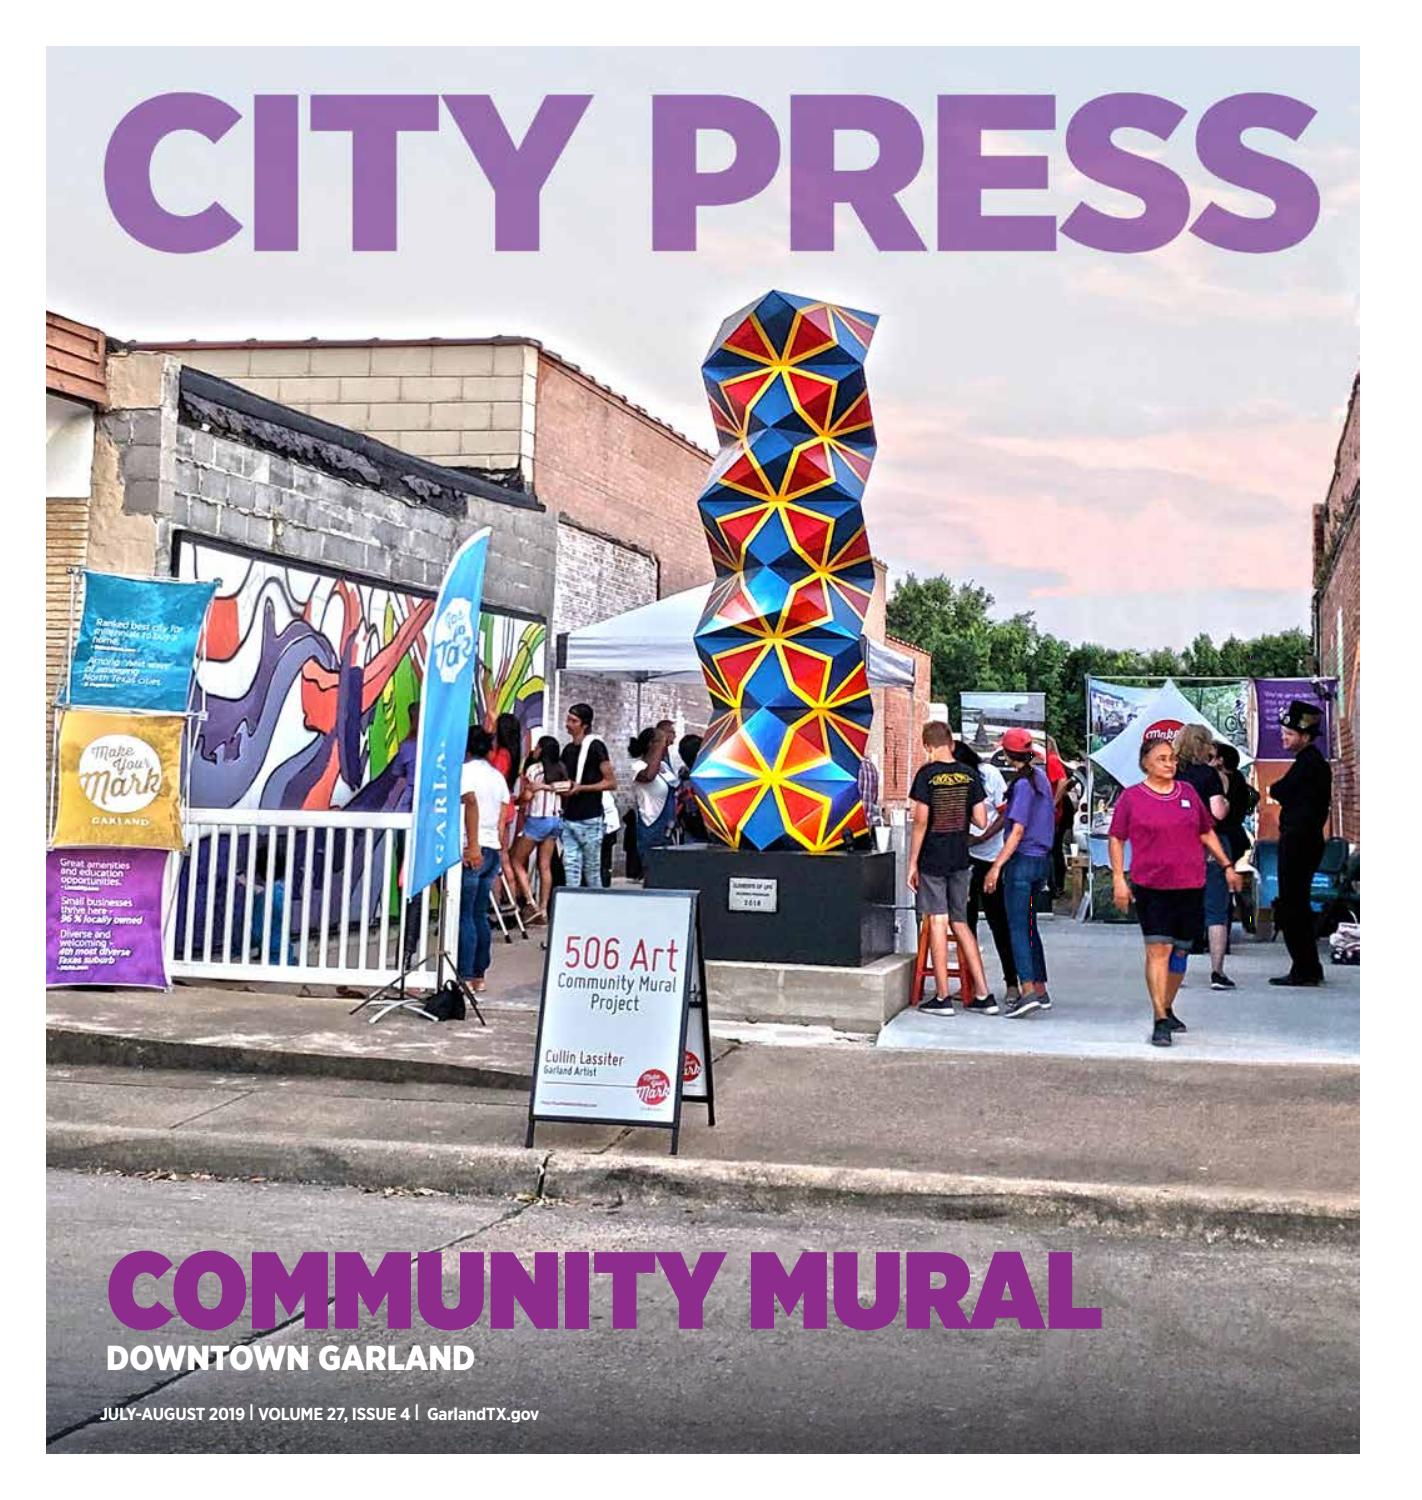 Where Is Garland Texas >> Garland City Press July 2019 By City Of Garland Texas Issuu